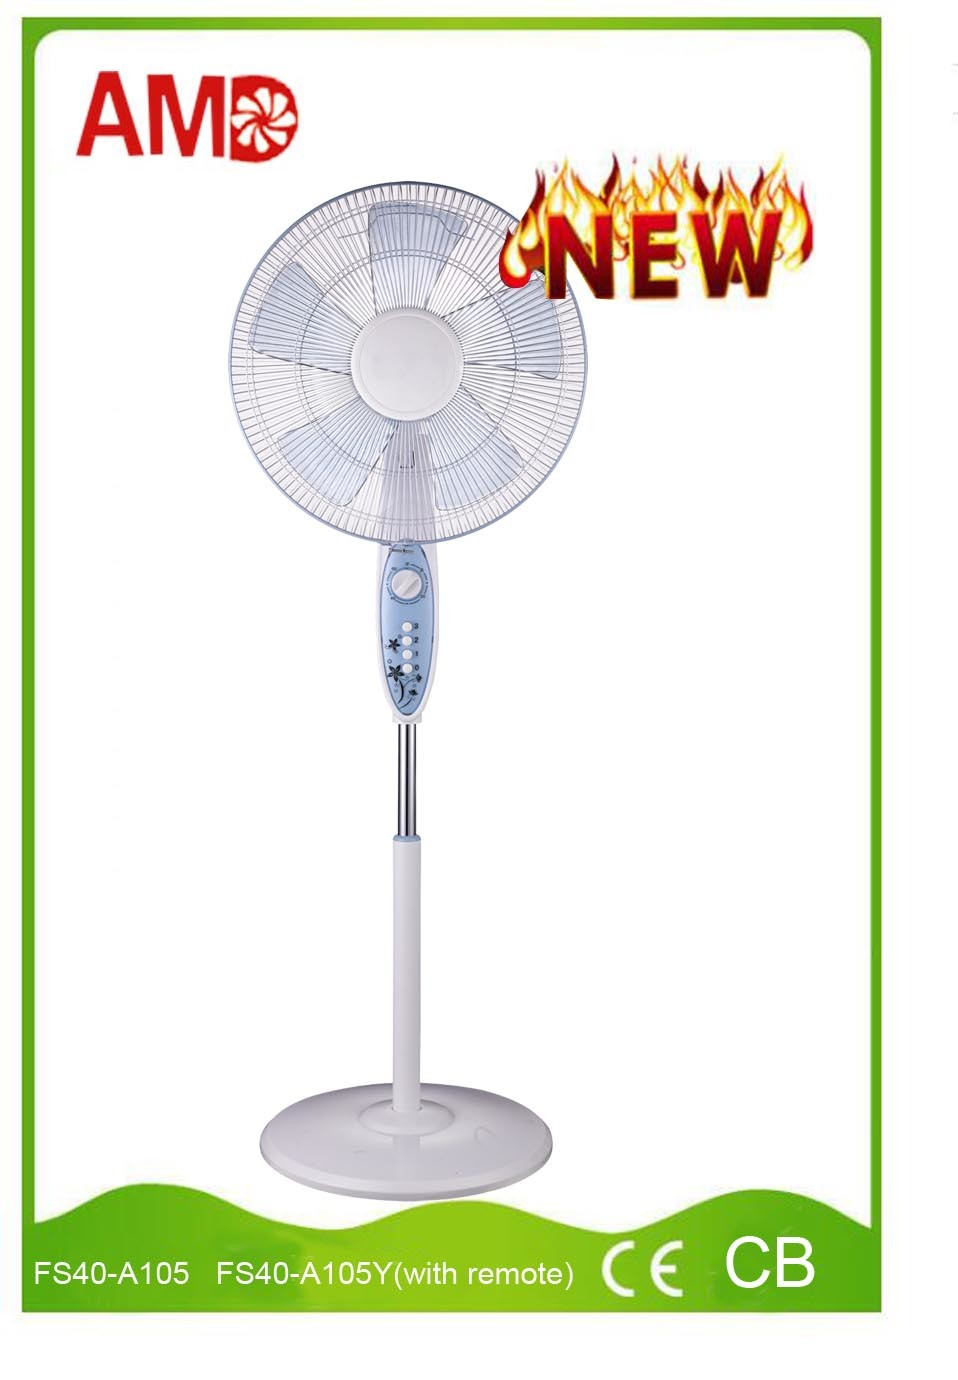 2016 Hot-Sale Stand Fan Pedestal Fan with Ce Certificate (FS40-A105)